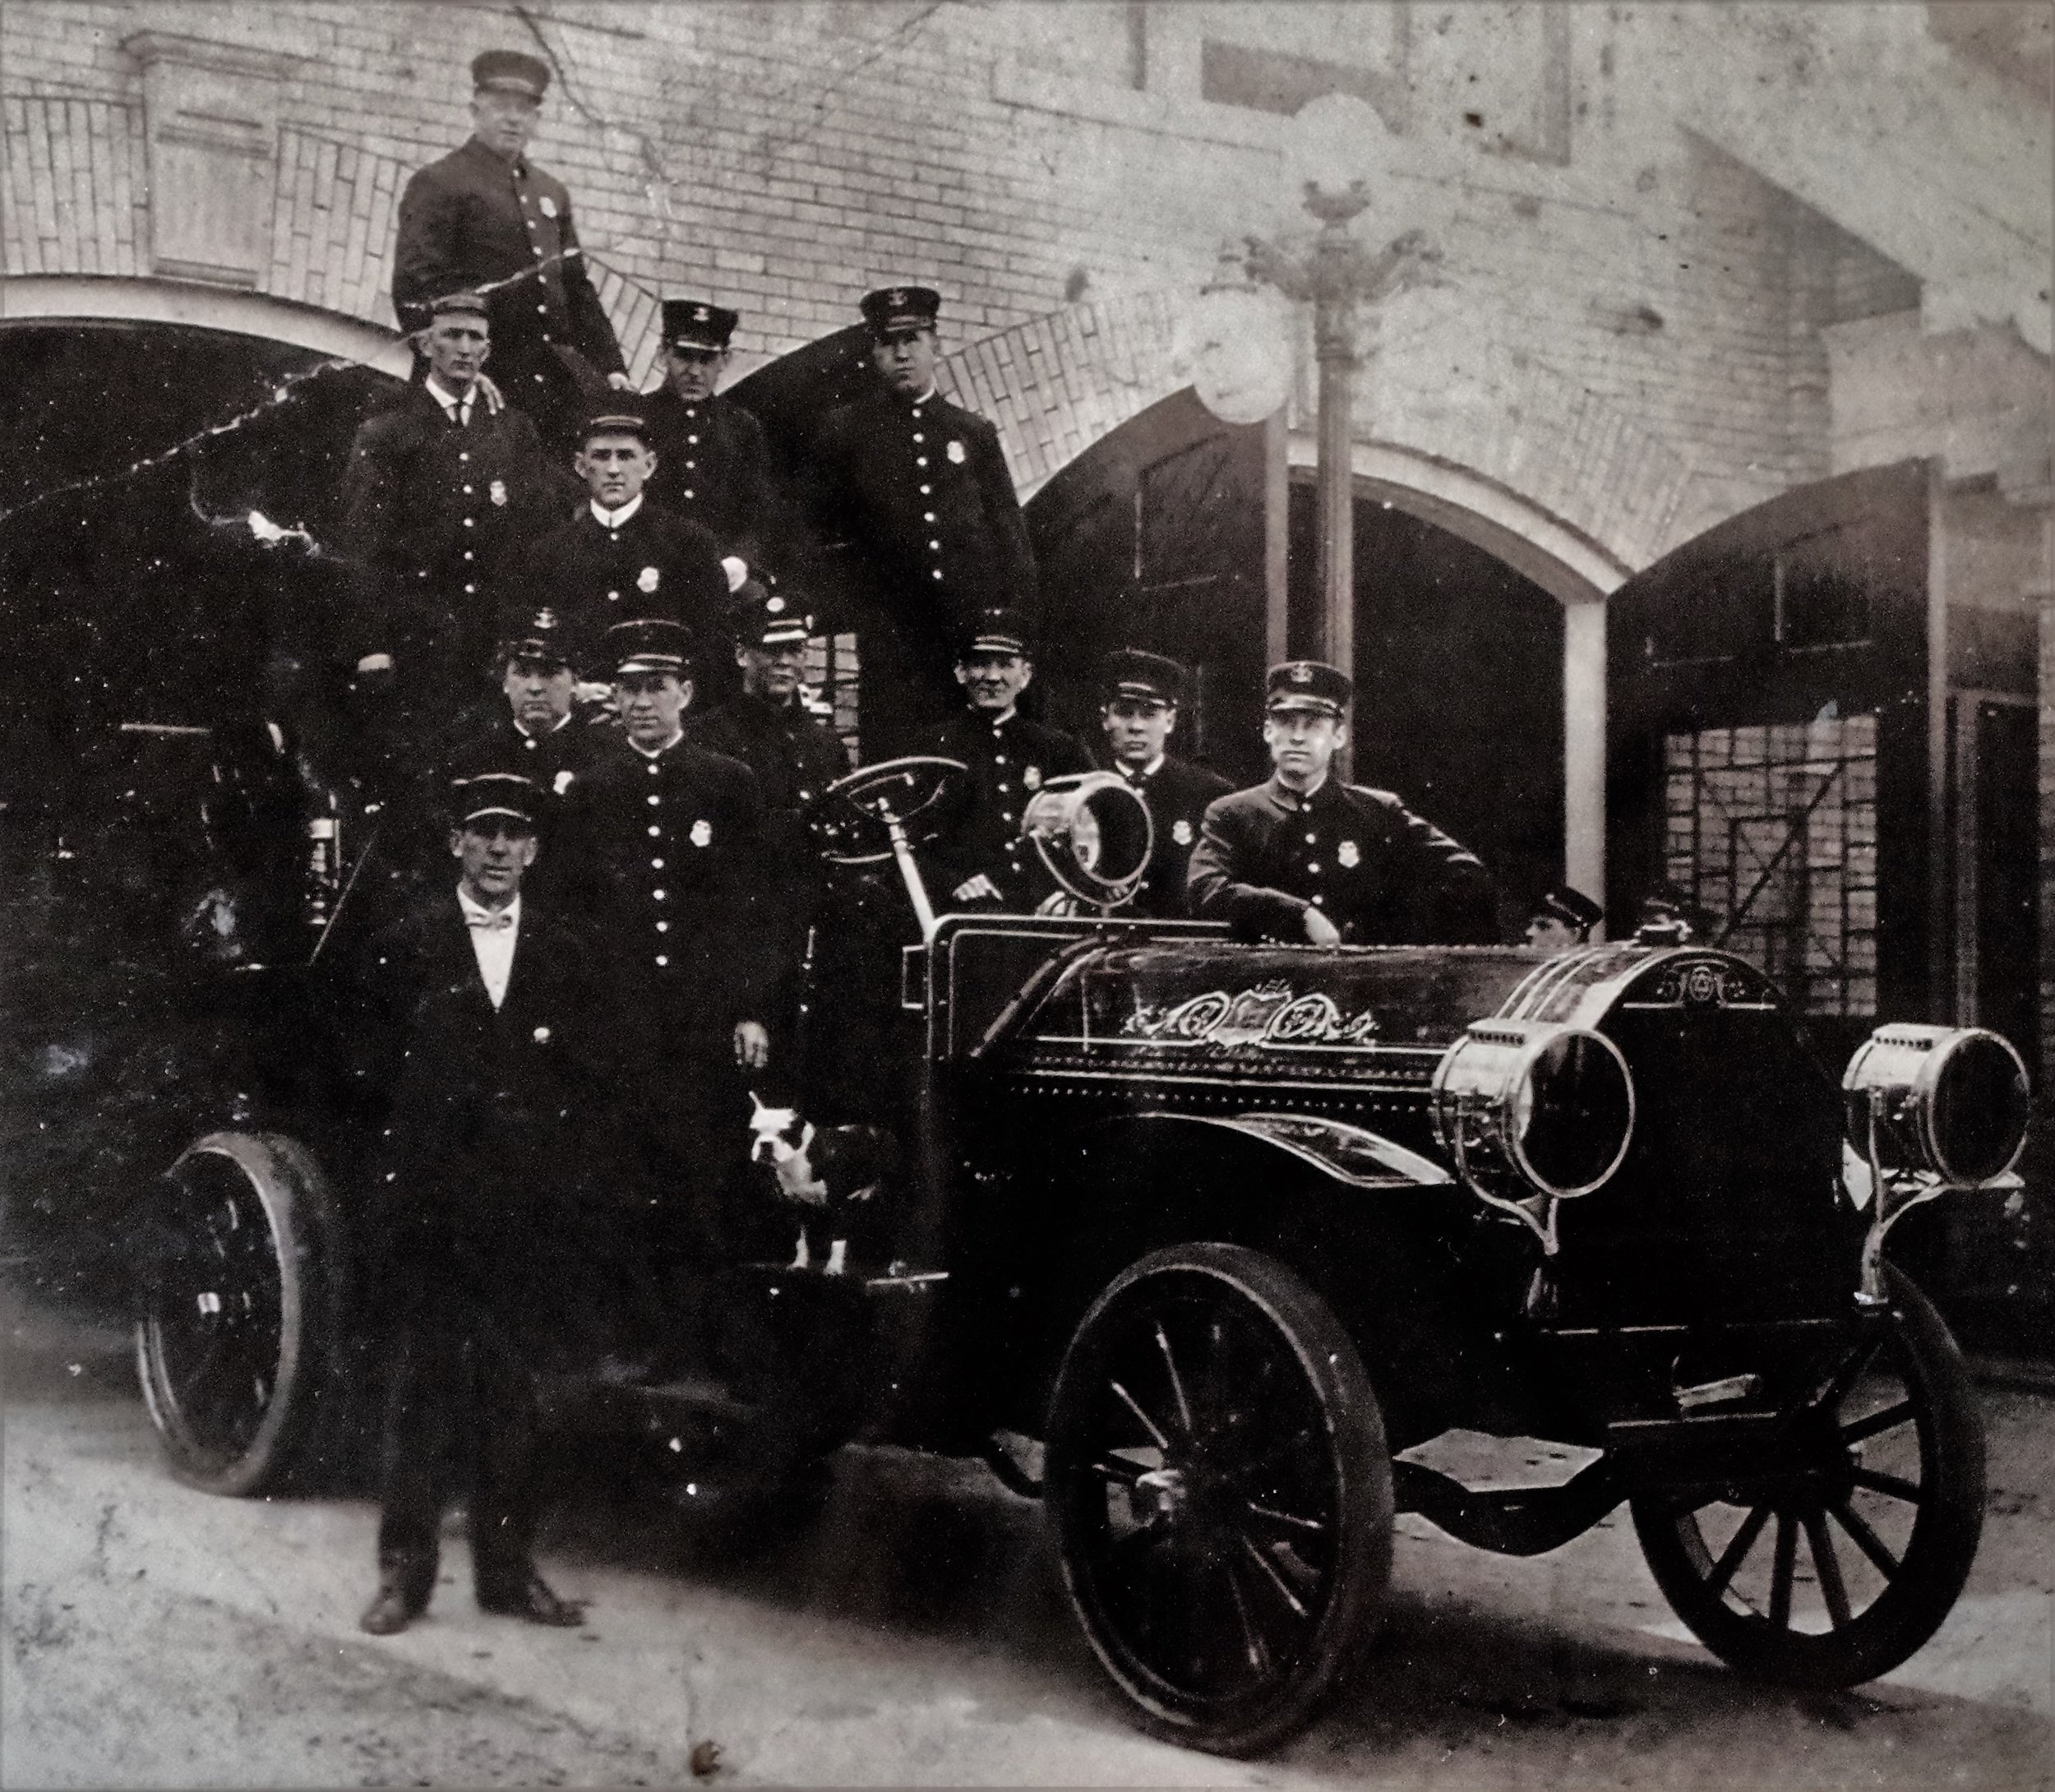 One of our earliest fire trucks.